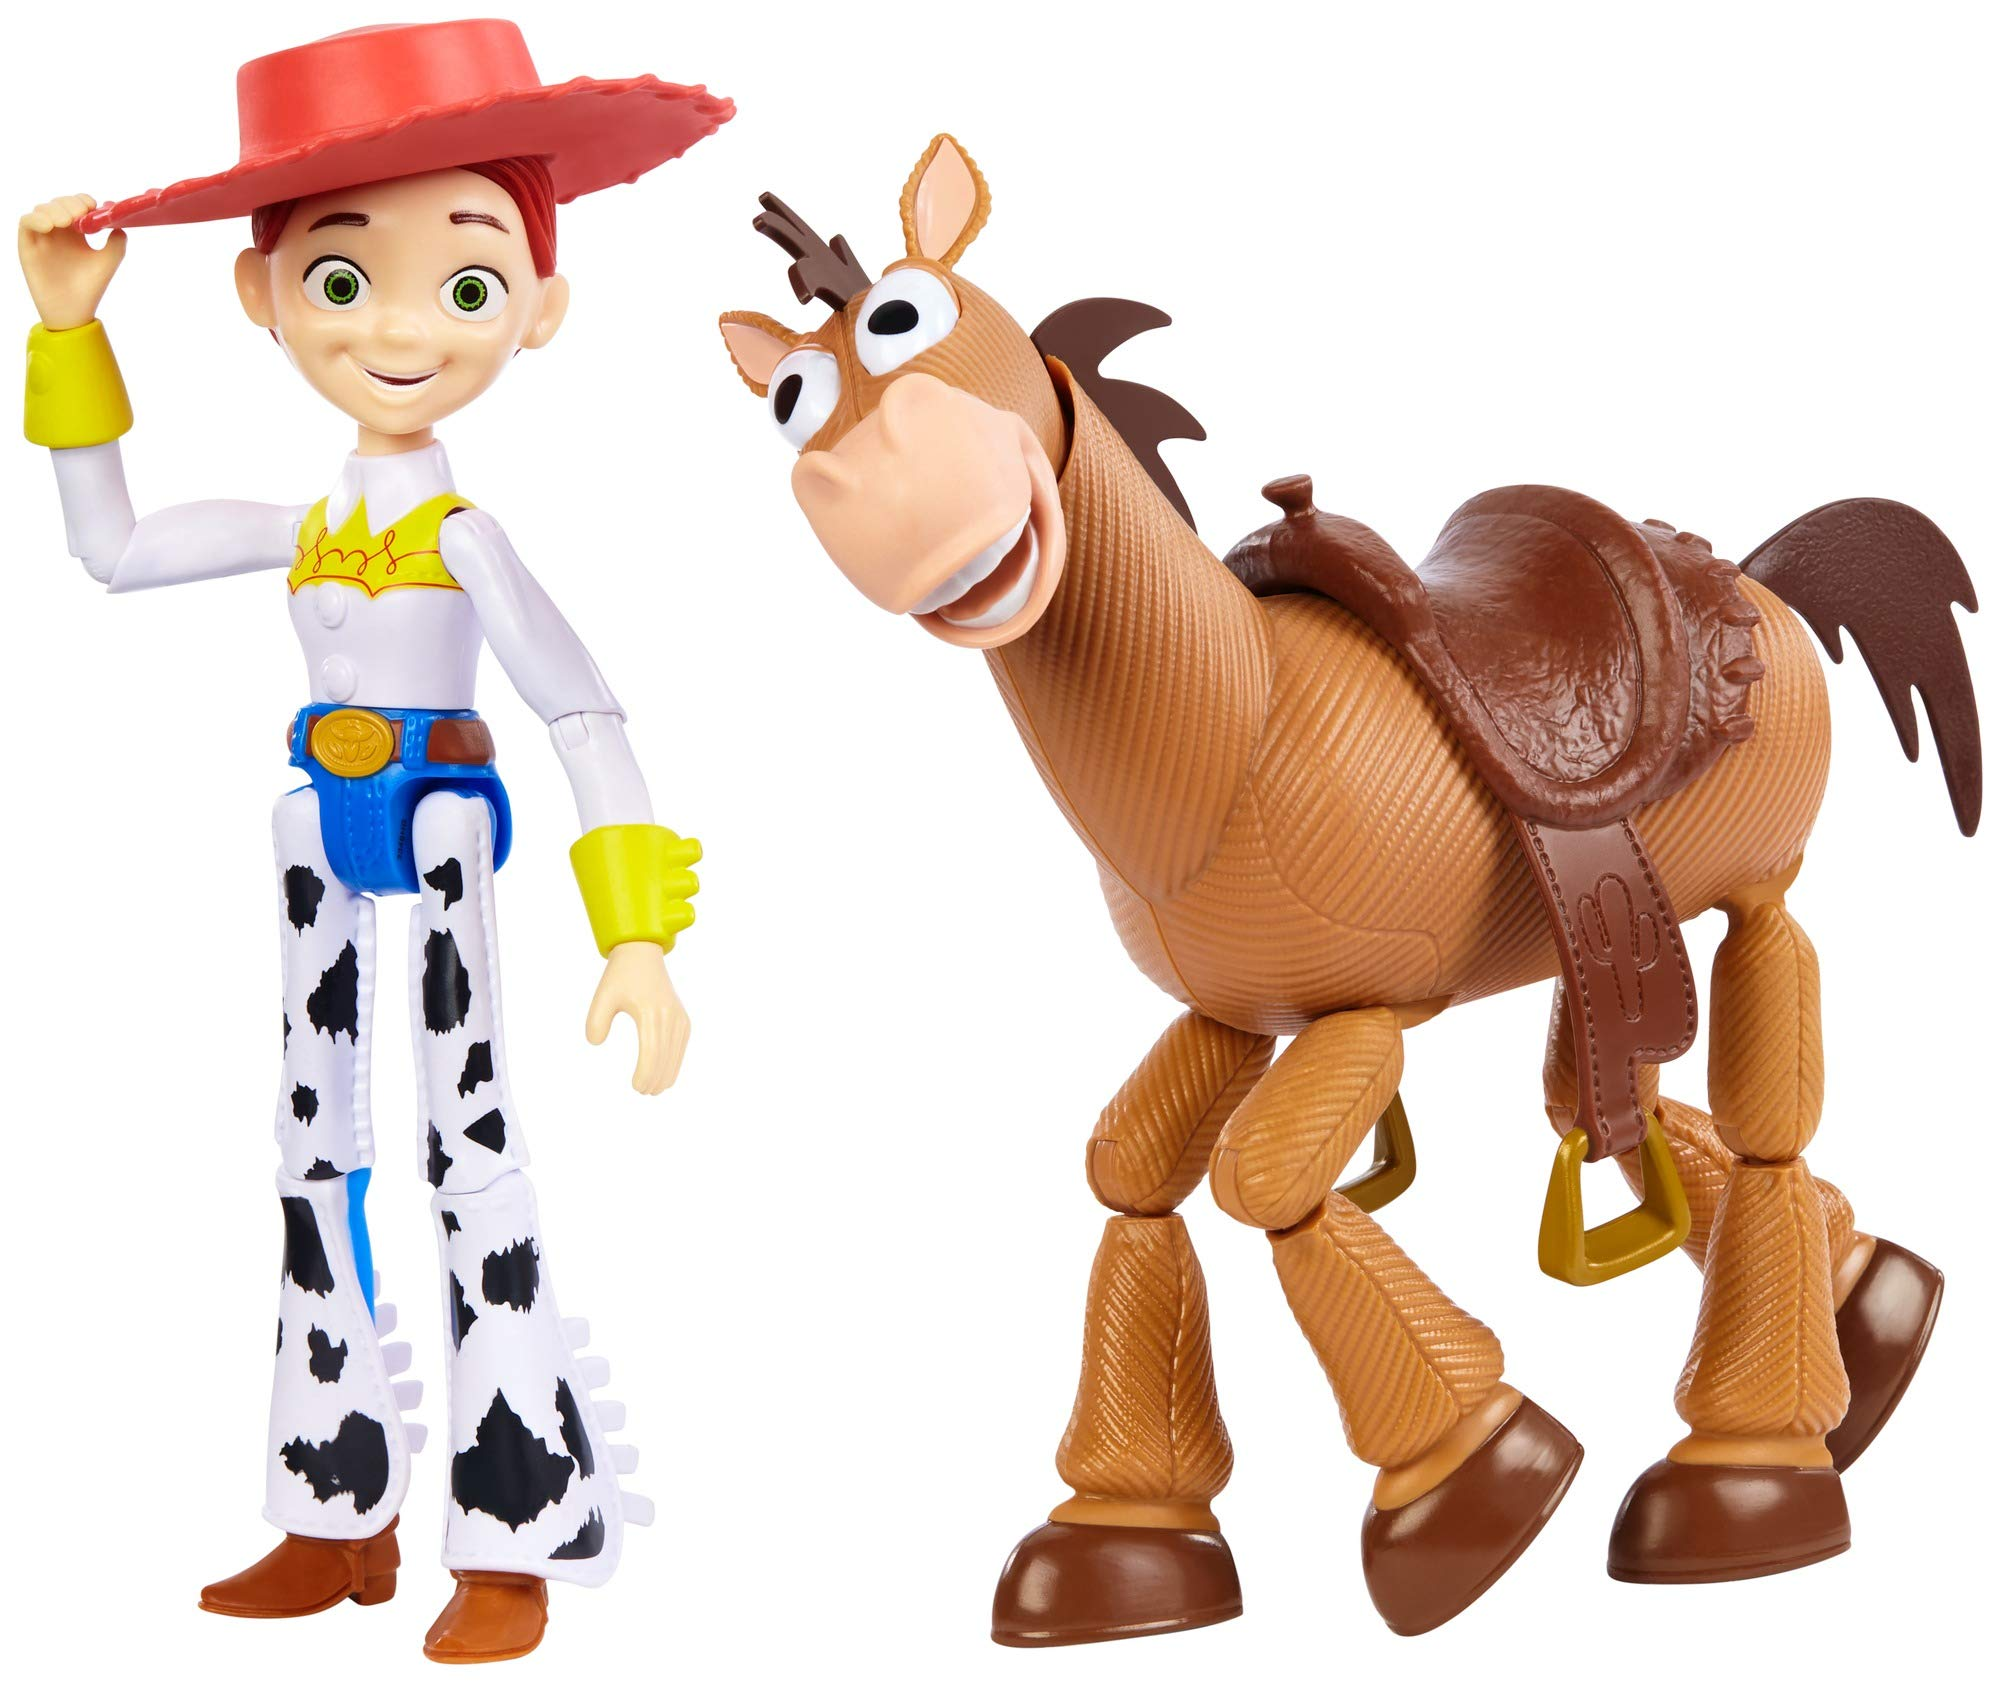 Disney and Pixar Toy Story Jessie and Bullseye 2-Pack Character Figures in True to Movie Scale, Posable with Signature Expressions for Storytelling and Adventure Play, Child's Gift Ages 3 and Up